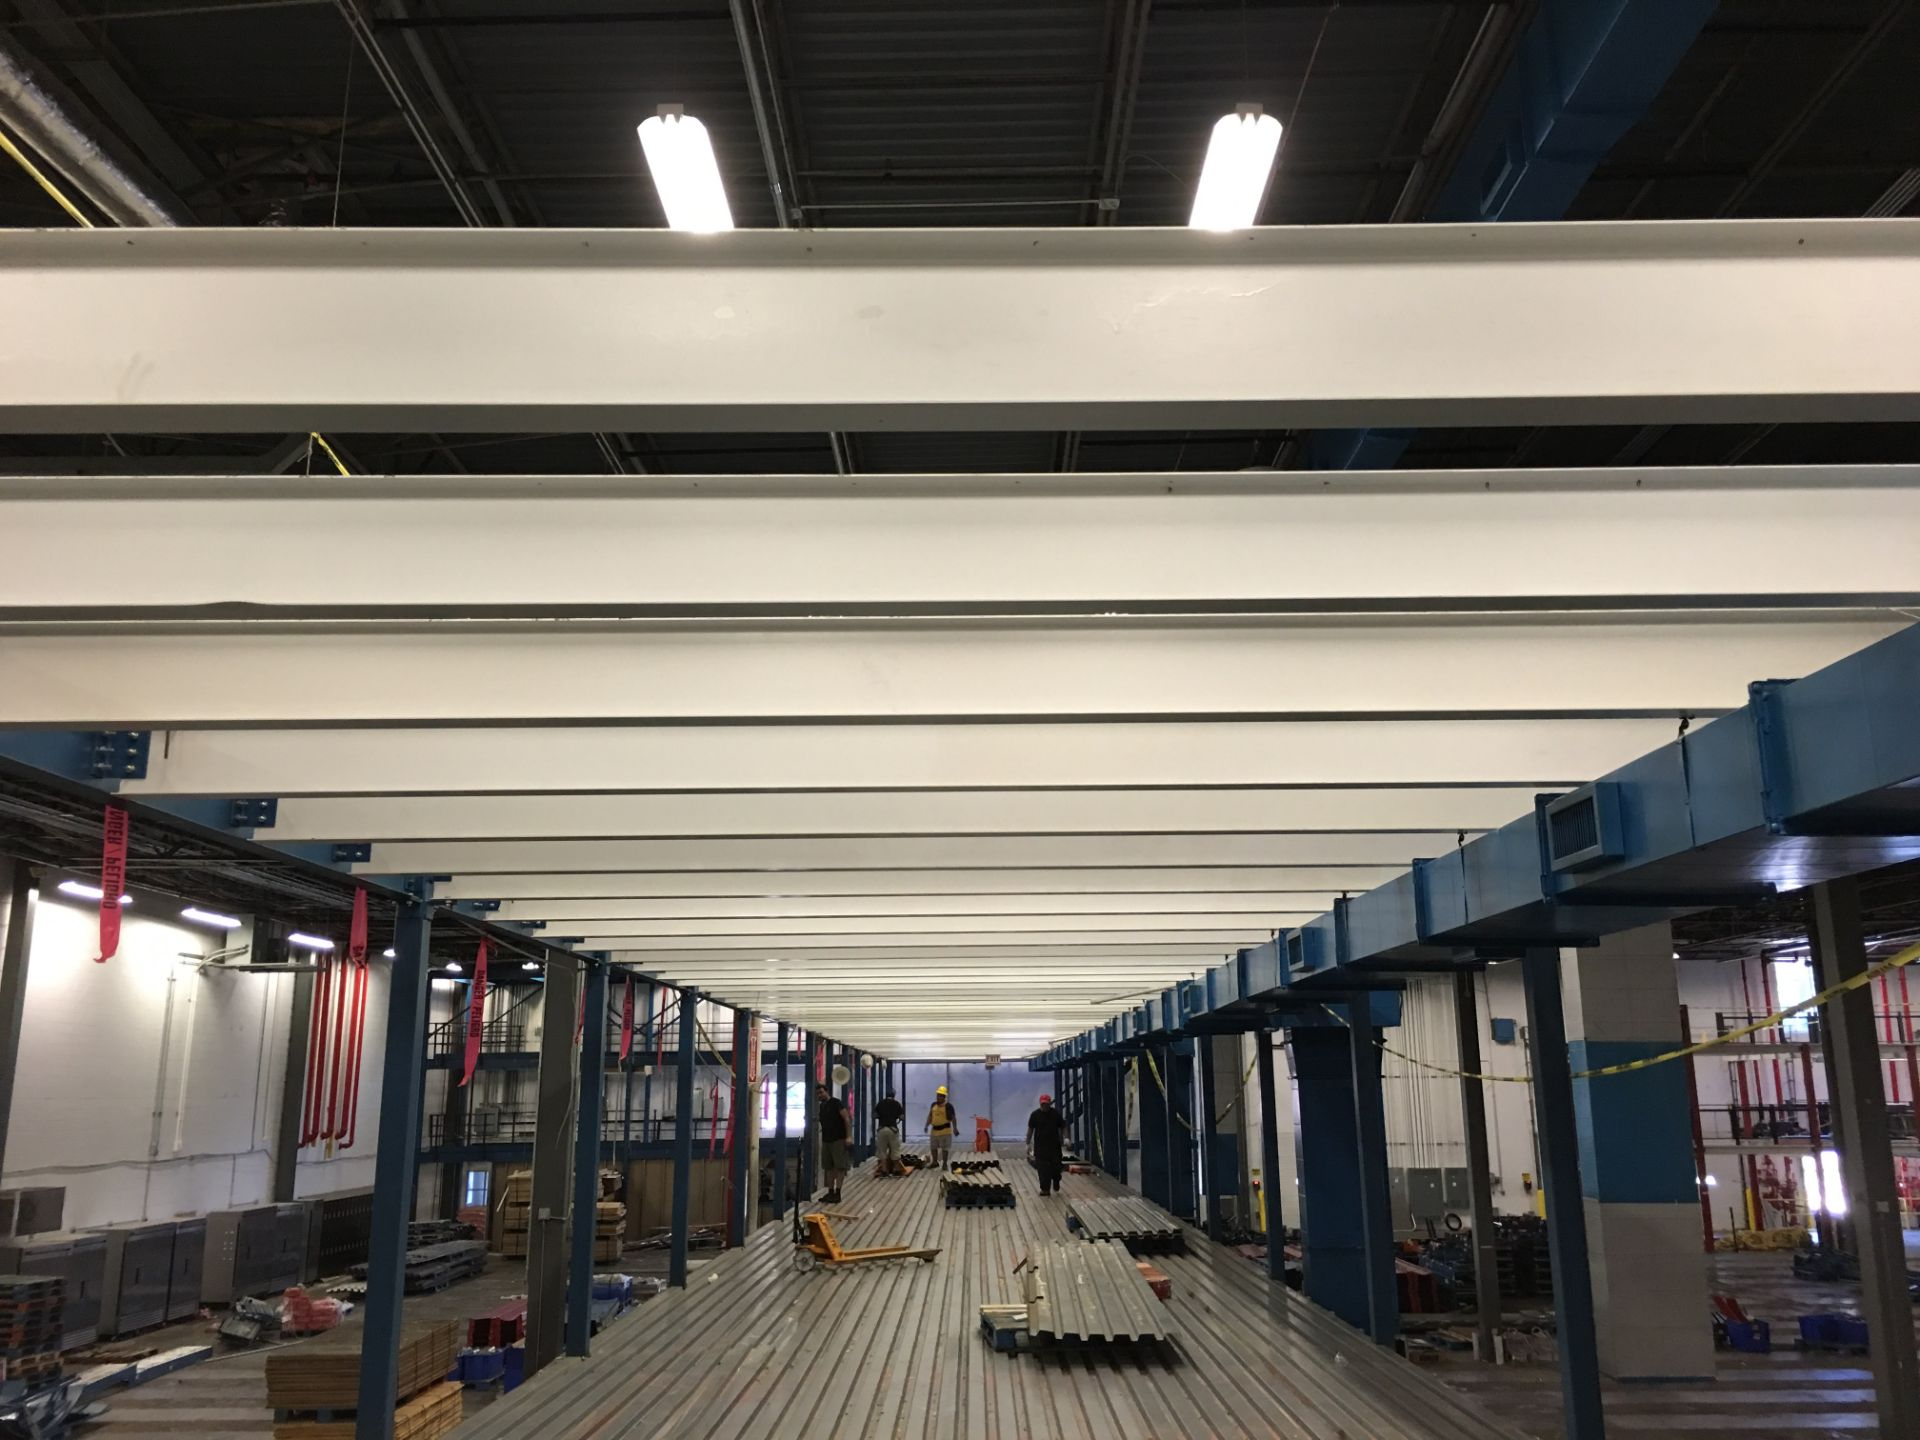 1500 SQ FT OF MEZZANINE WITH WOODEN FLOOR DECKING, OVERALL SIZE: 18'W X 84'LONG